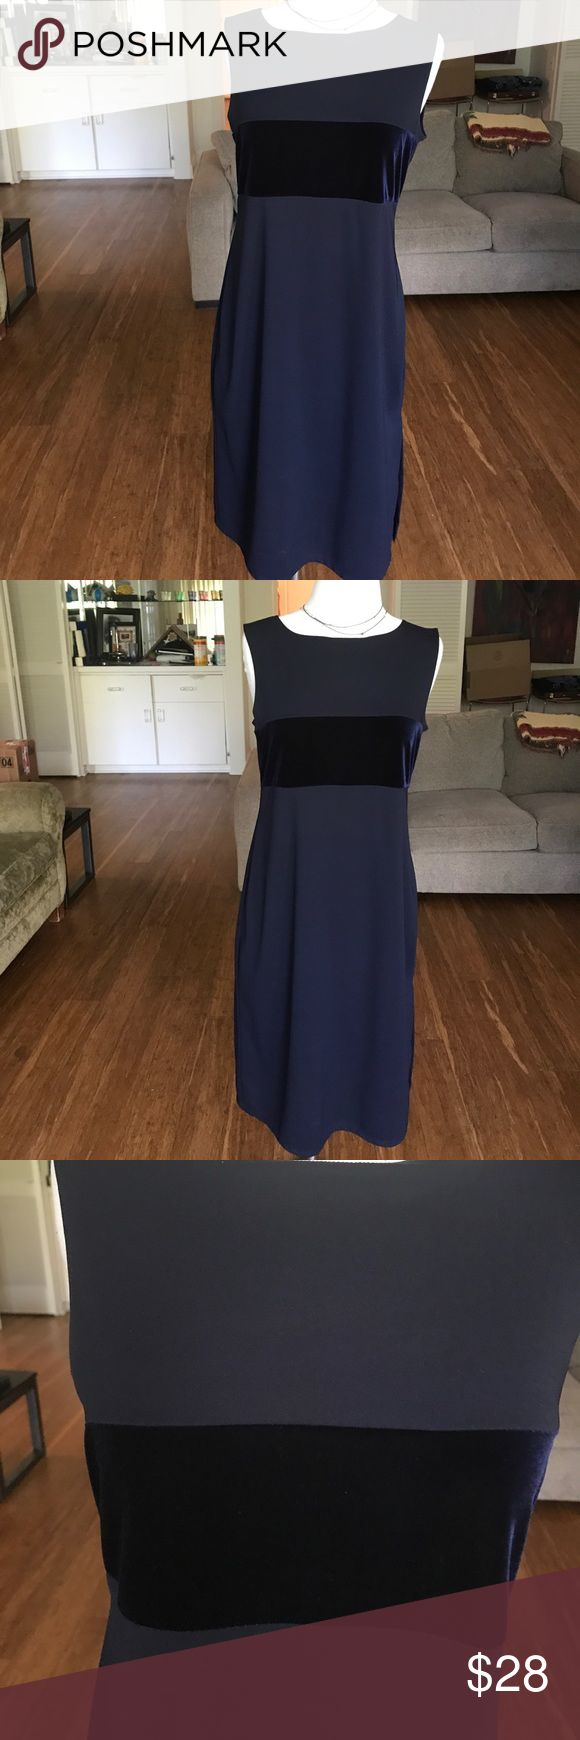 ABSOLUTELY STUNNING NAVY VELVET AND CREPEY DRESS MUST SELL EVERYTHING SALE - MOVING IN 4 WEEKS SALE This extremely beautiful simple shift dress with a velvet strip across the bodice is in excellent used condition. It was worn to one event. It's that kind of dress you can put and when you want something simple and yet you want to look beautiful. There's a subtle side slit that adds to the beauty of the dress. This is a max studio peace Max Studio Dresses Midi